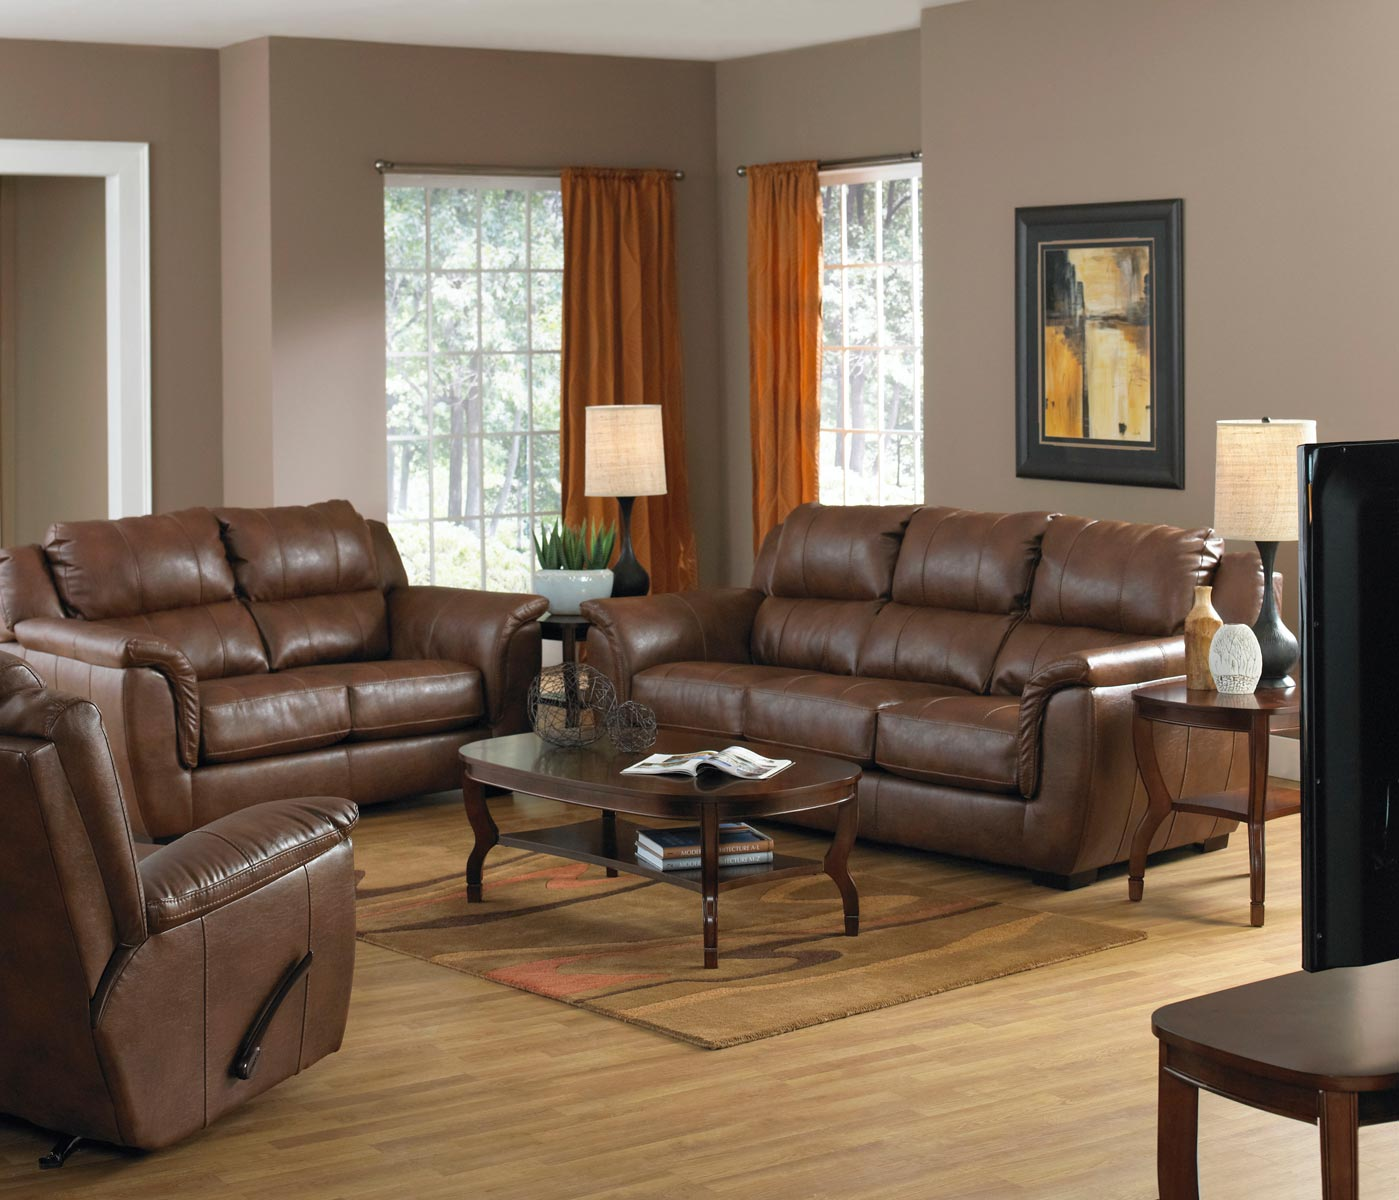 verona leather sofa reviews how to make slipcovers for sofas and loveseats jackson set chestnut